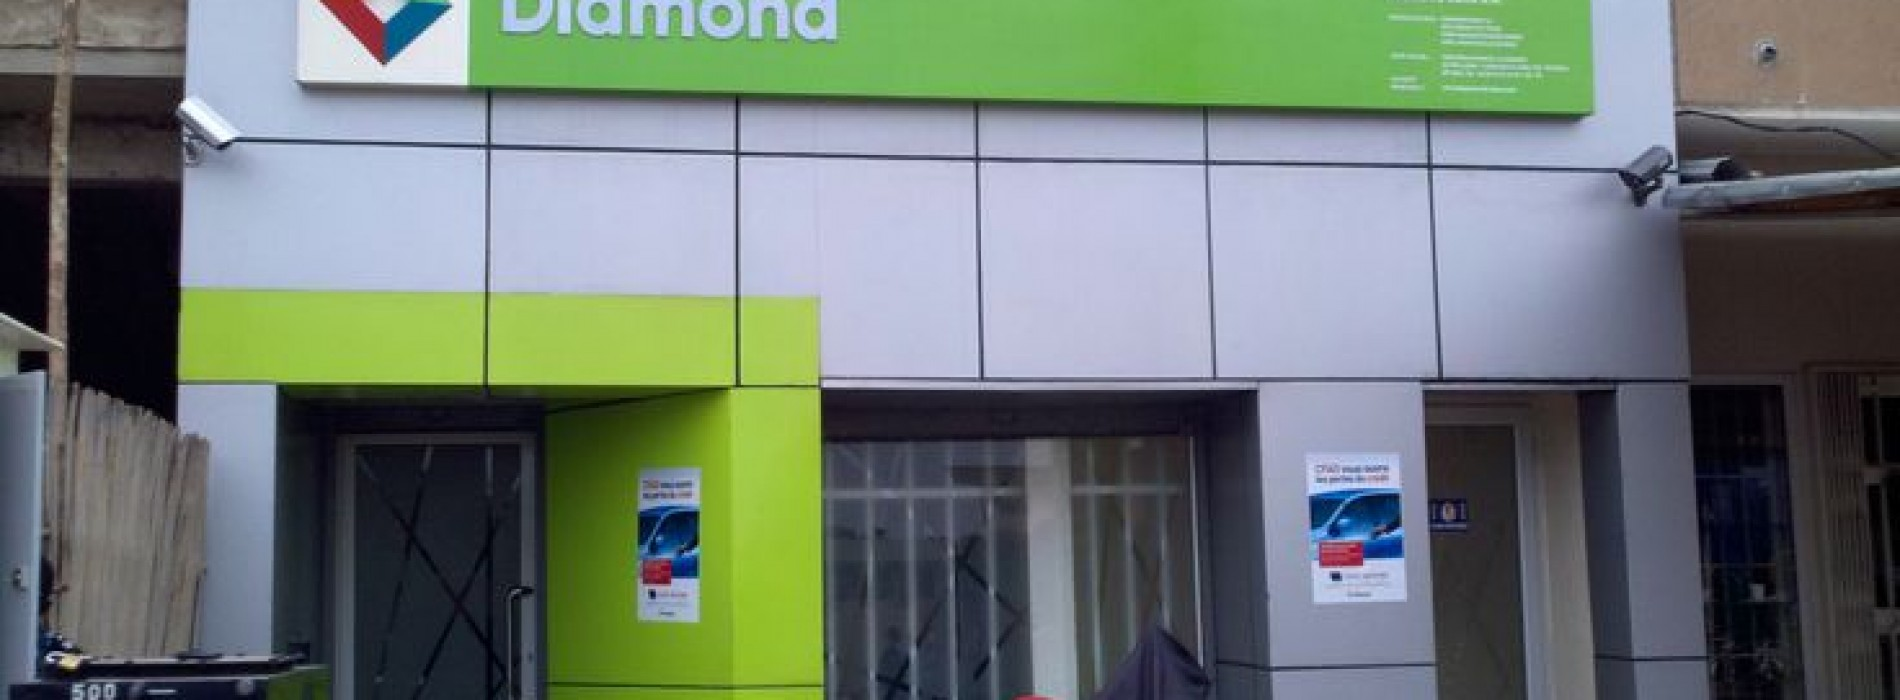 Diamond Bank sells its banking operations to Manzi Finances S.A